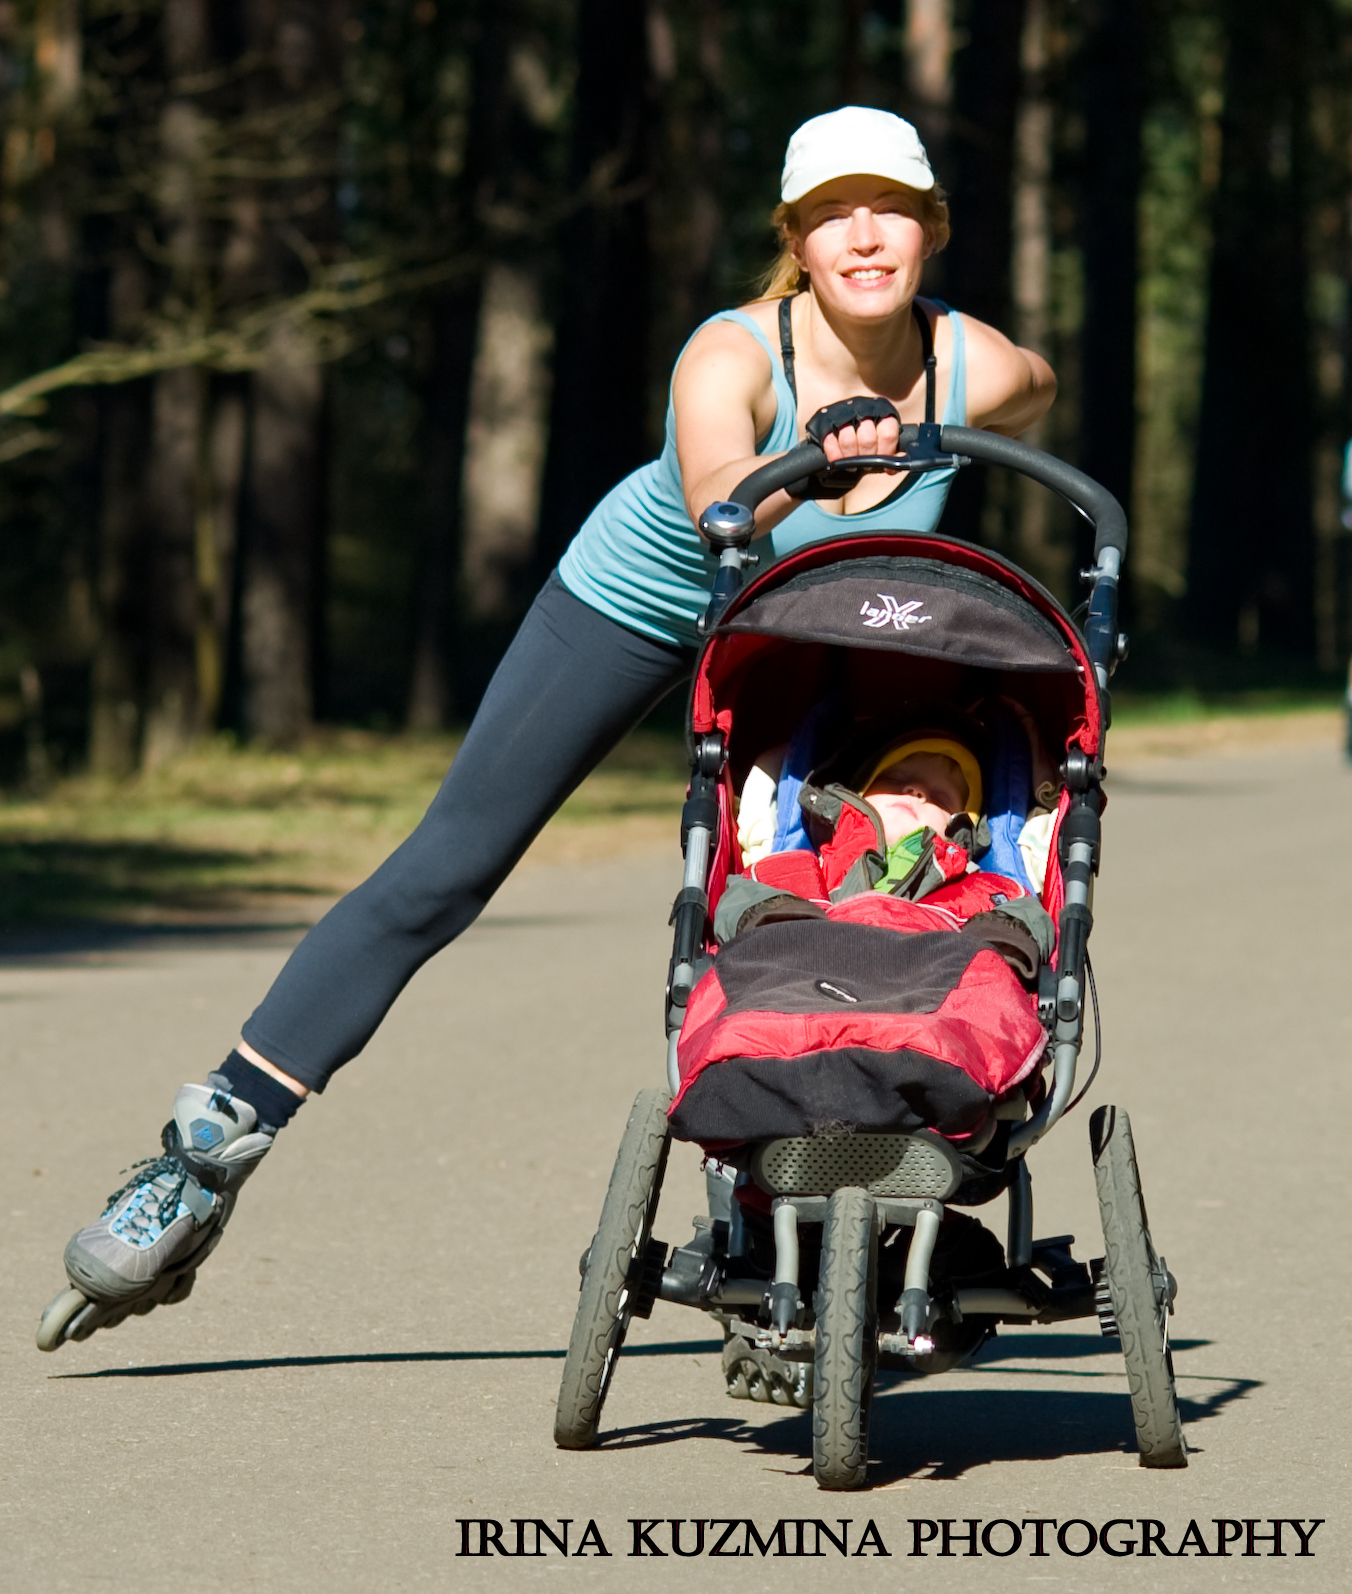 Women rollerblading with the jogging stroller